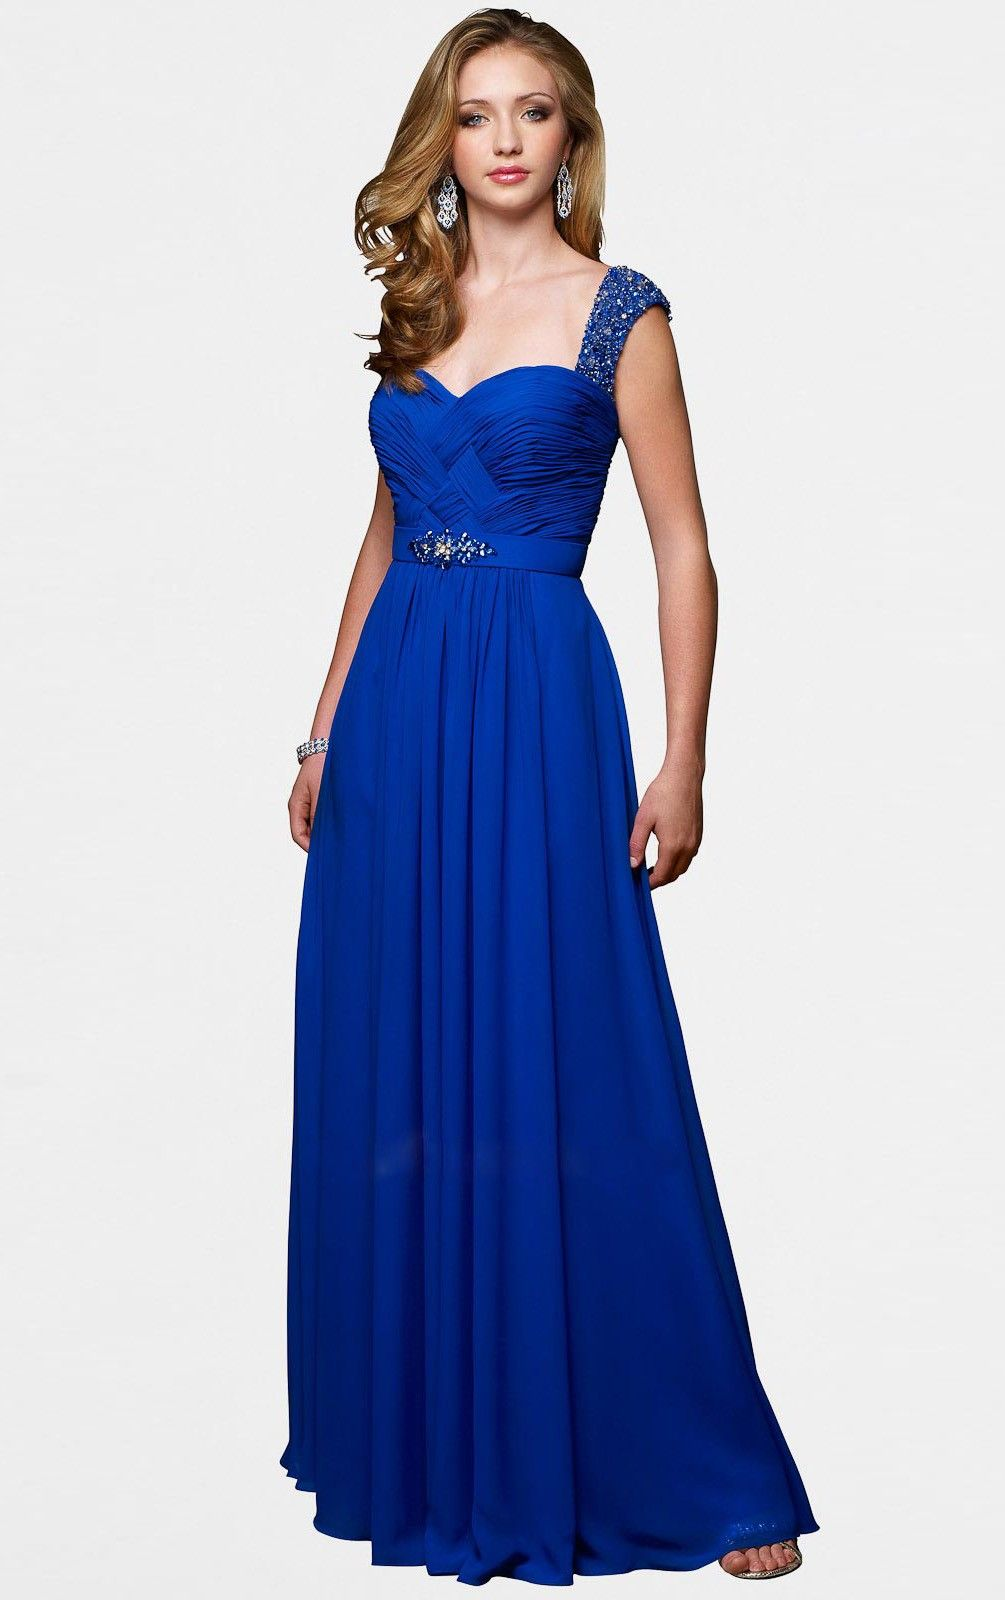 Buy australia sheath floor length shoulder straps royal blue dress buy australia sheath floor length shoulder straps royal blue dress ladies dresses and flower girls dresses discount dresses for sale izmirmasajfo